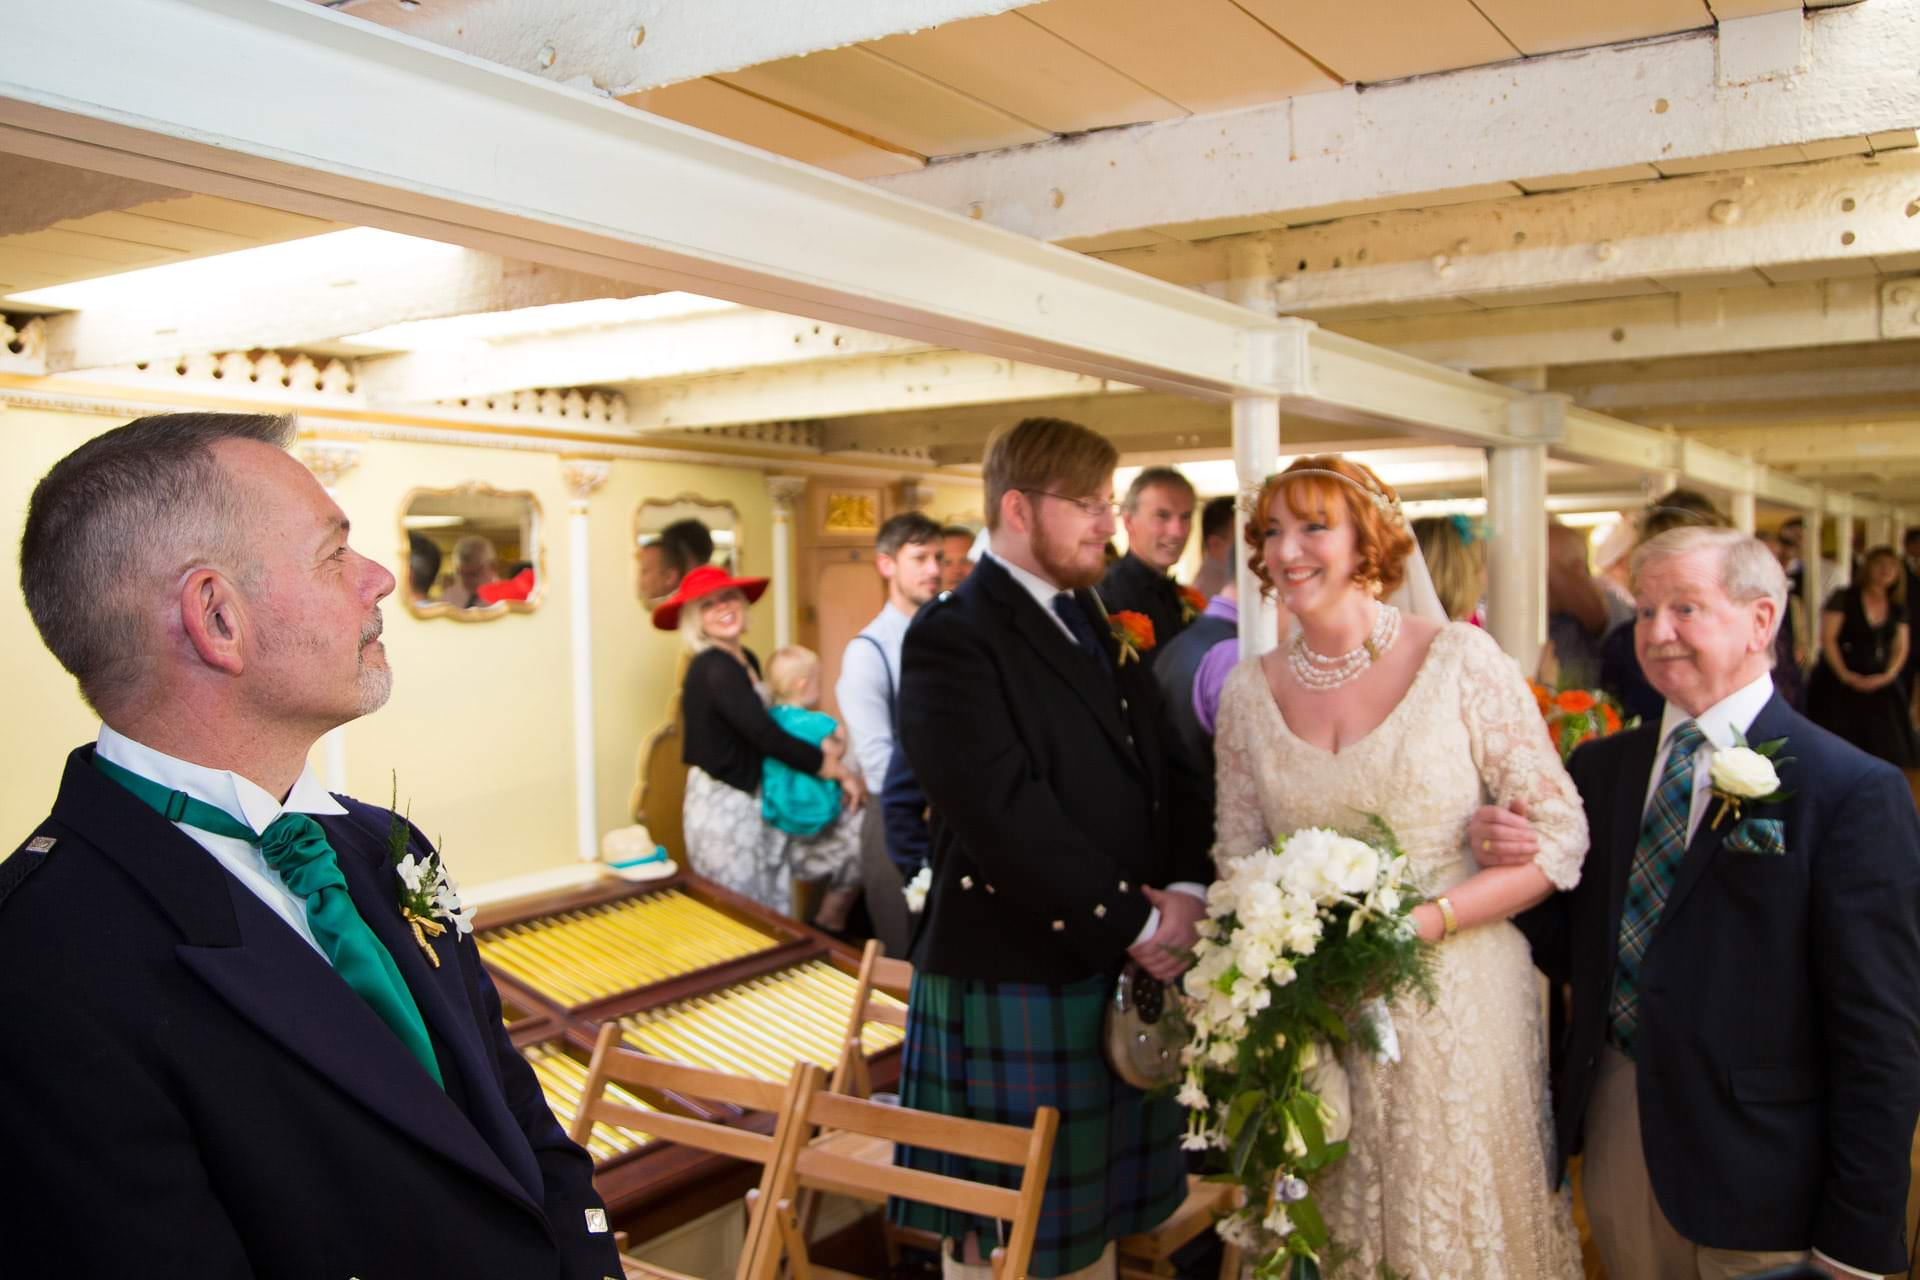 wedding at ss great britain